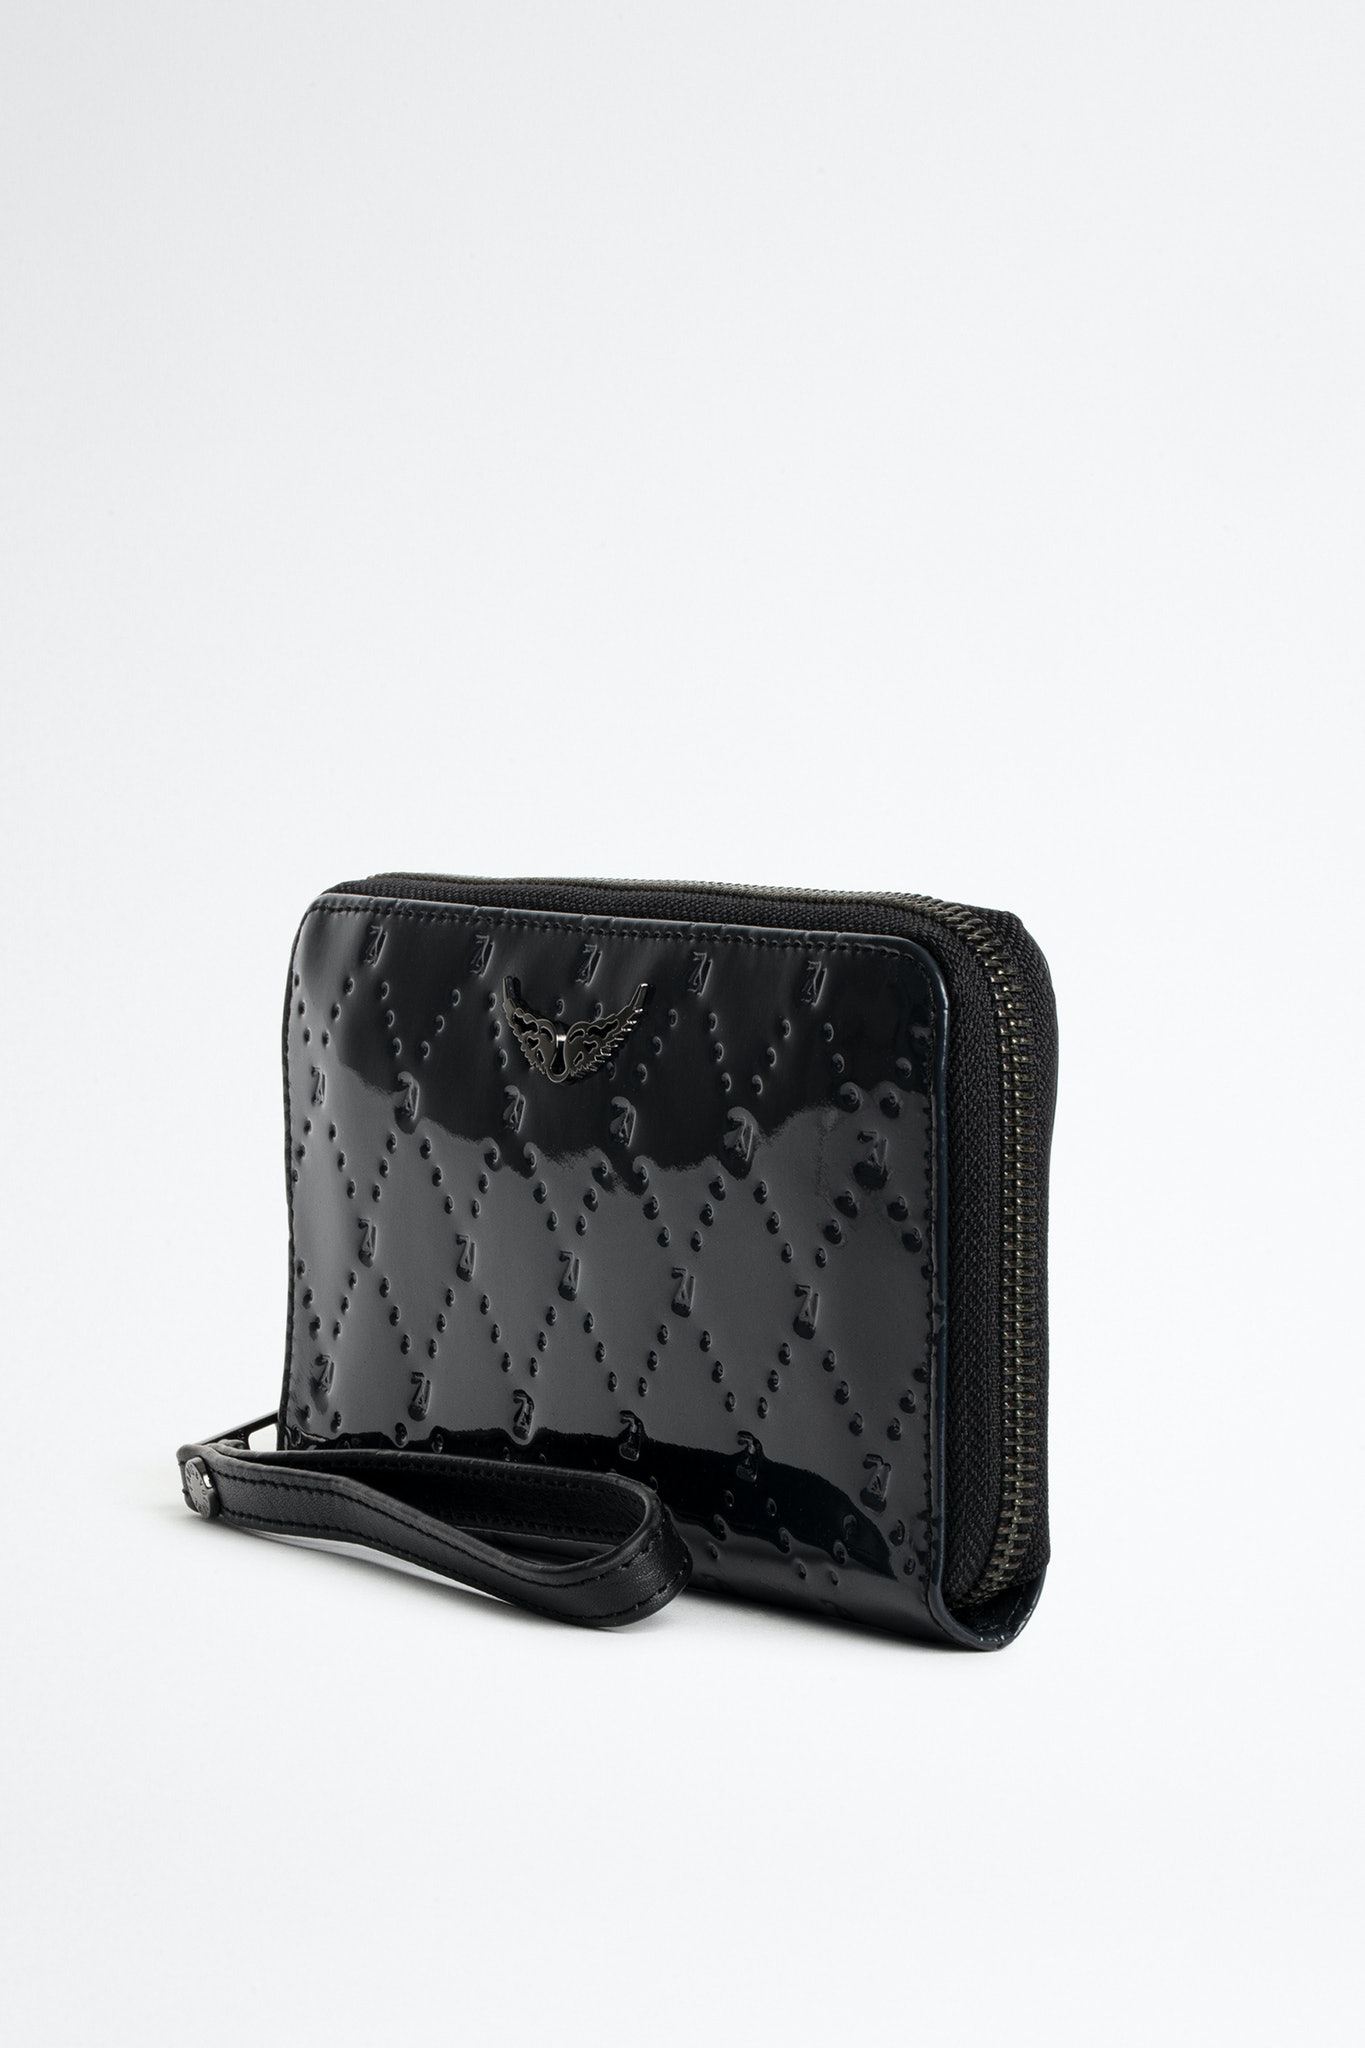 Compagnon ZV Embossed Patent Wallet